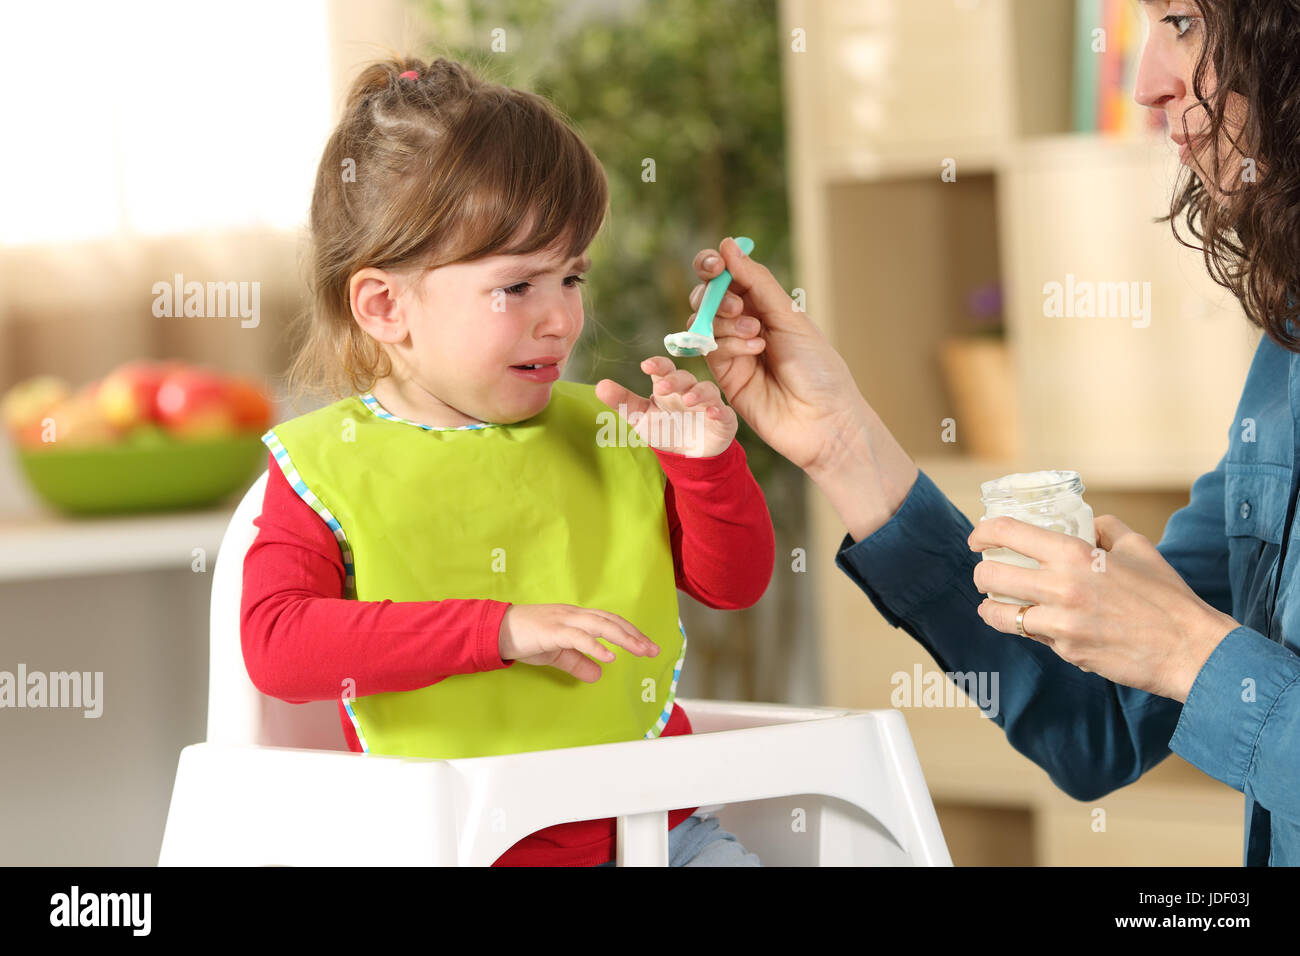 Toddler crying at lunch time sitting in a highchair in the living room at home with a homey background Stock Photo